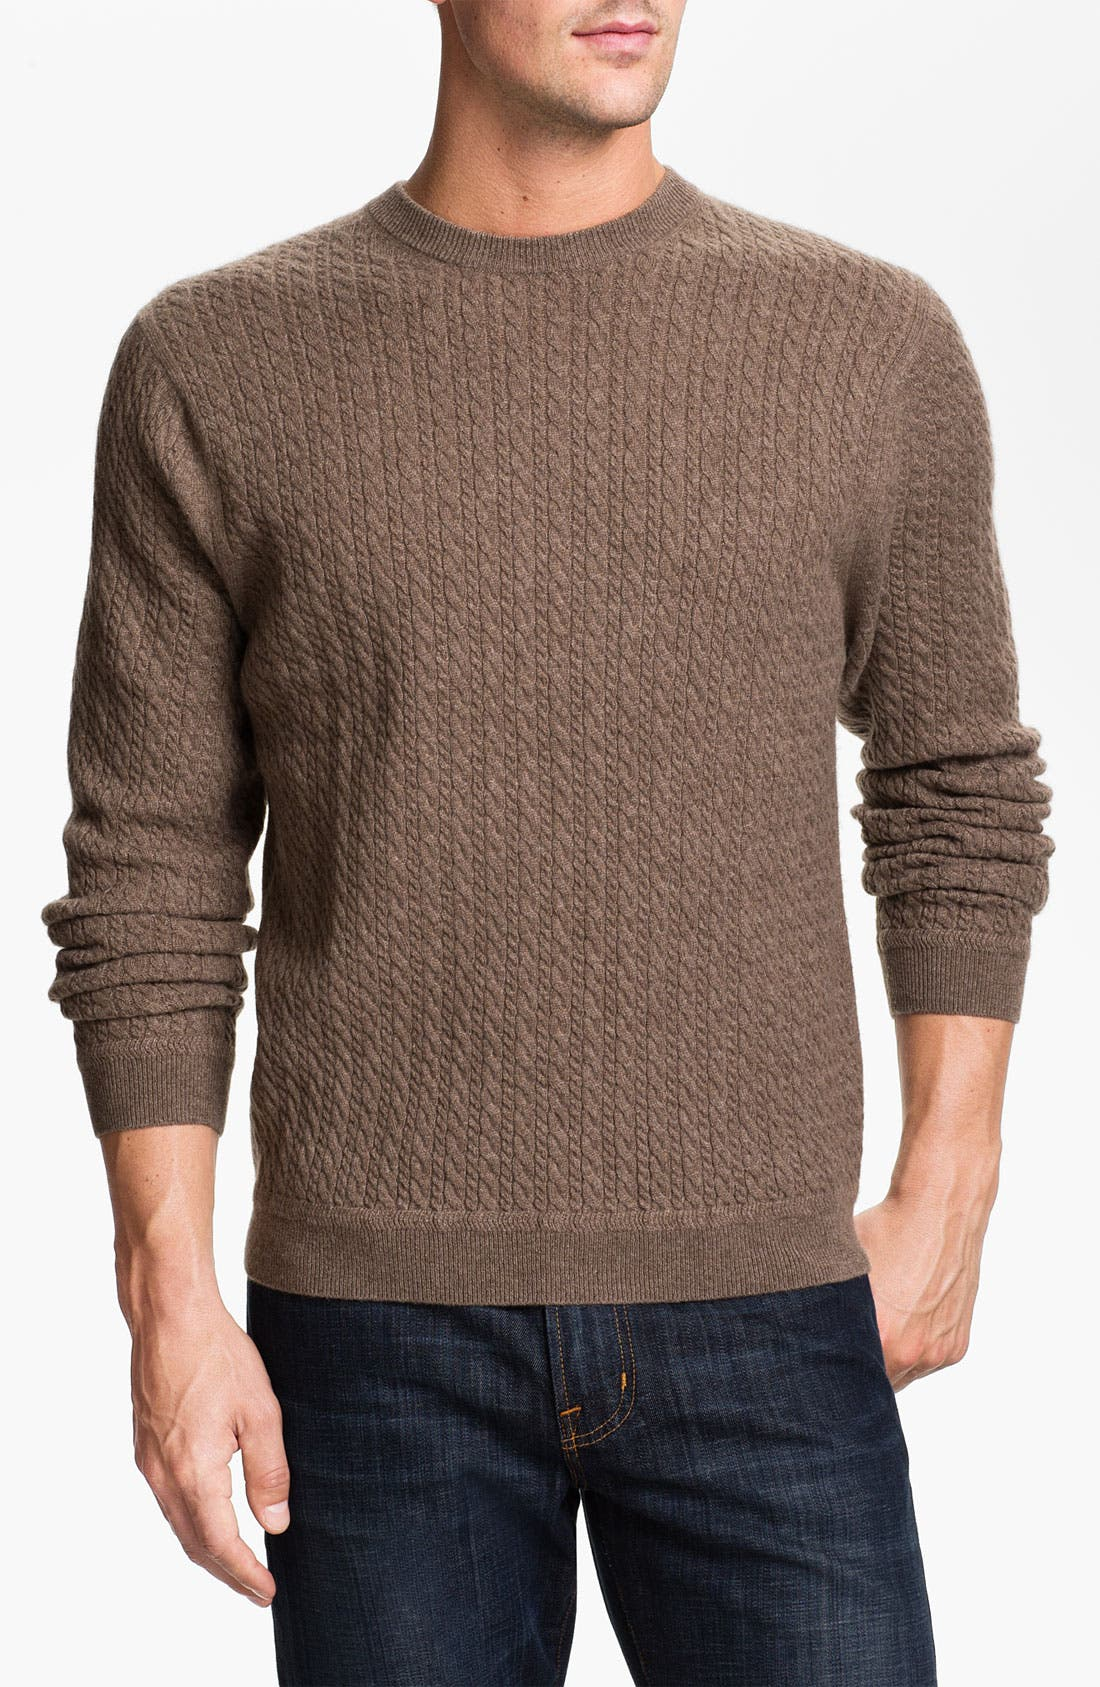 Alternate Image 1 Selected - John W. Nordstrom® Cable Knit Cashmere Sweater